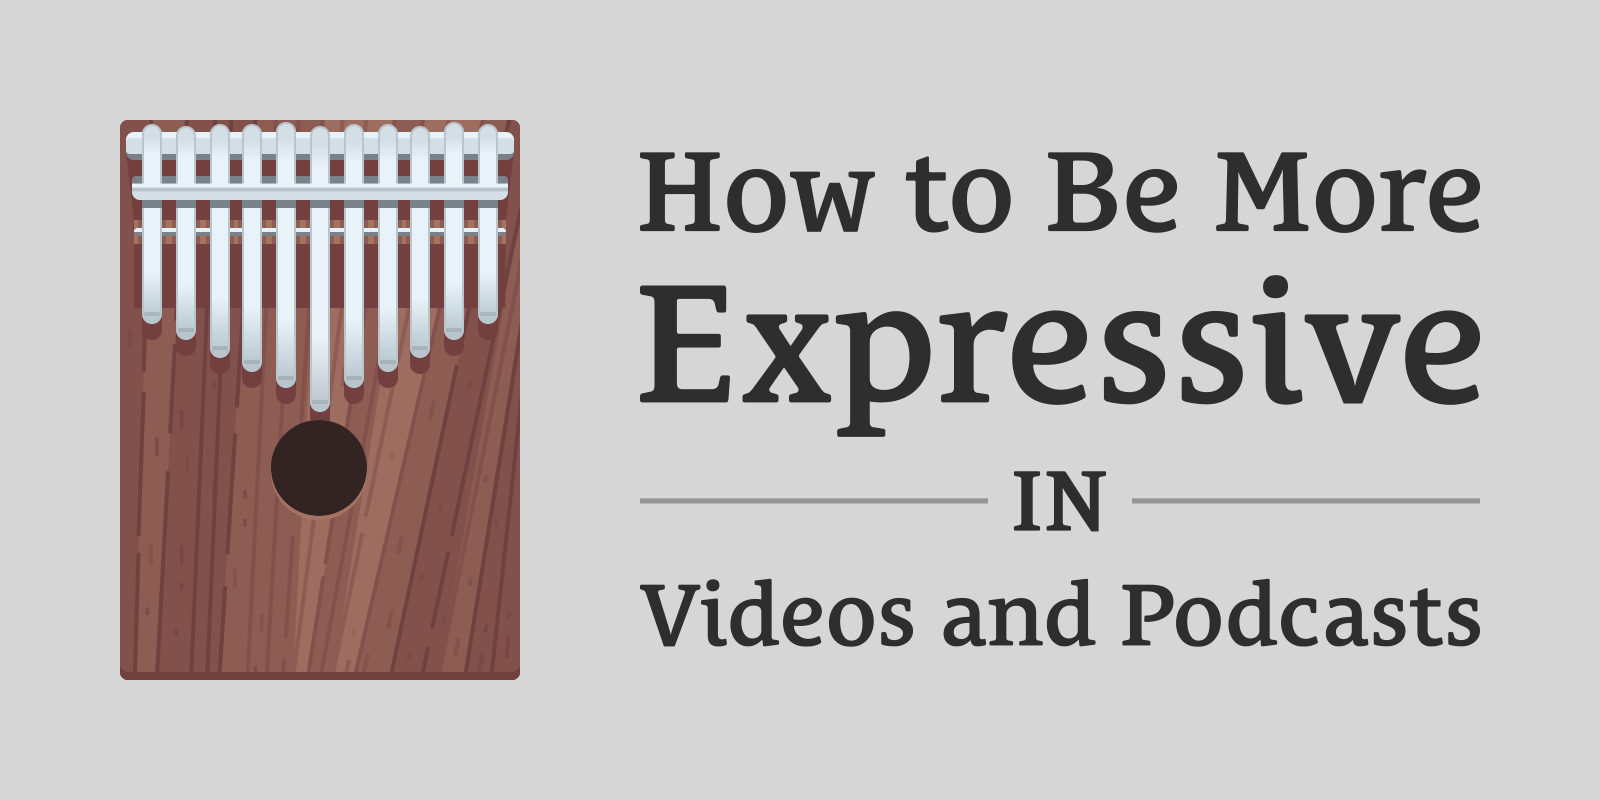 How to Be More Expressive in Videos and Podcasts